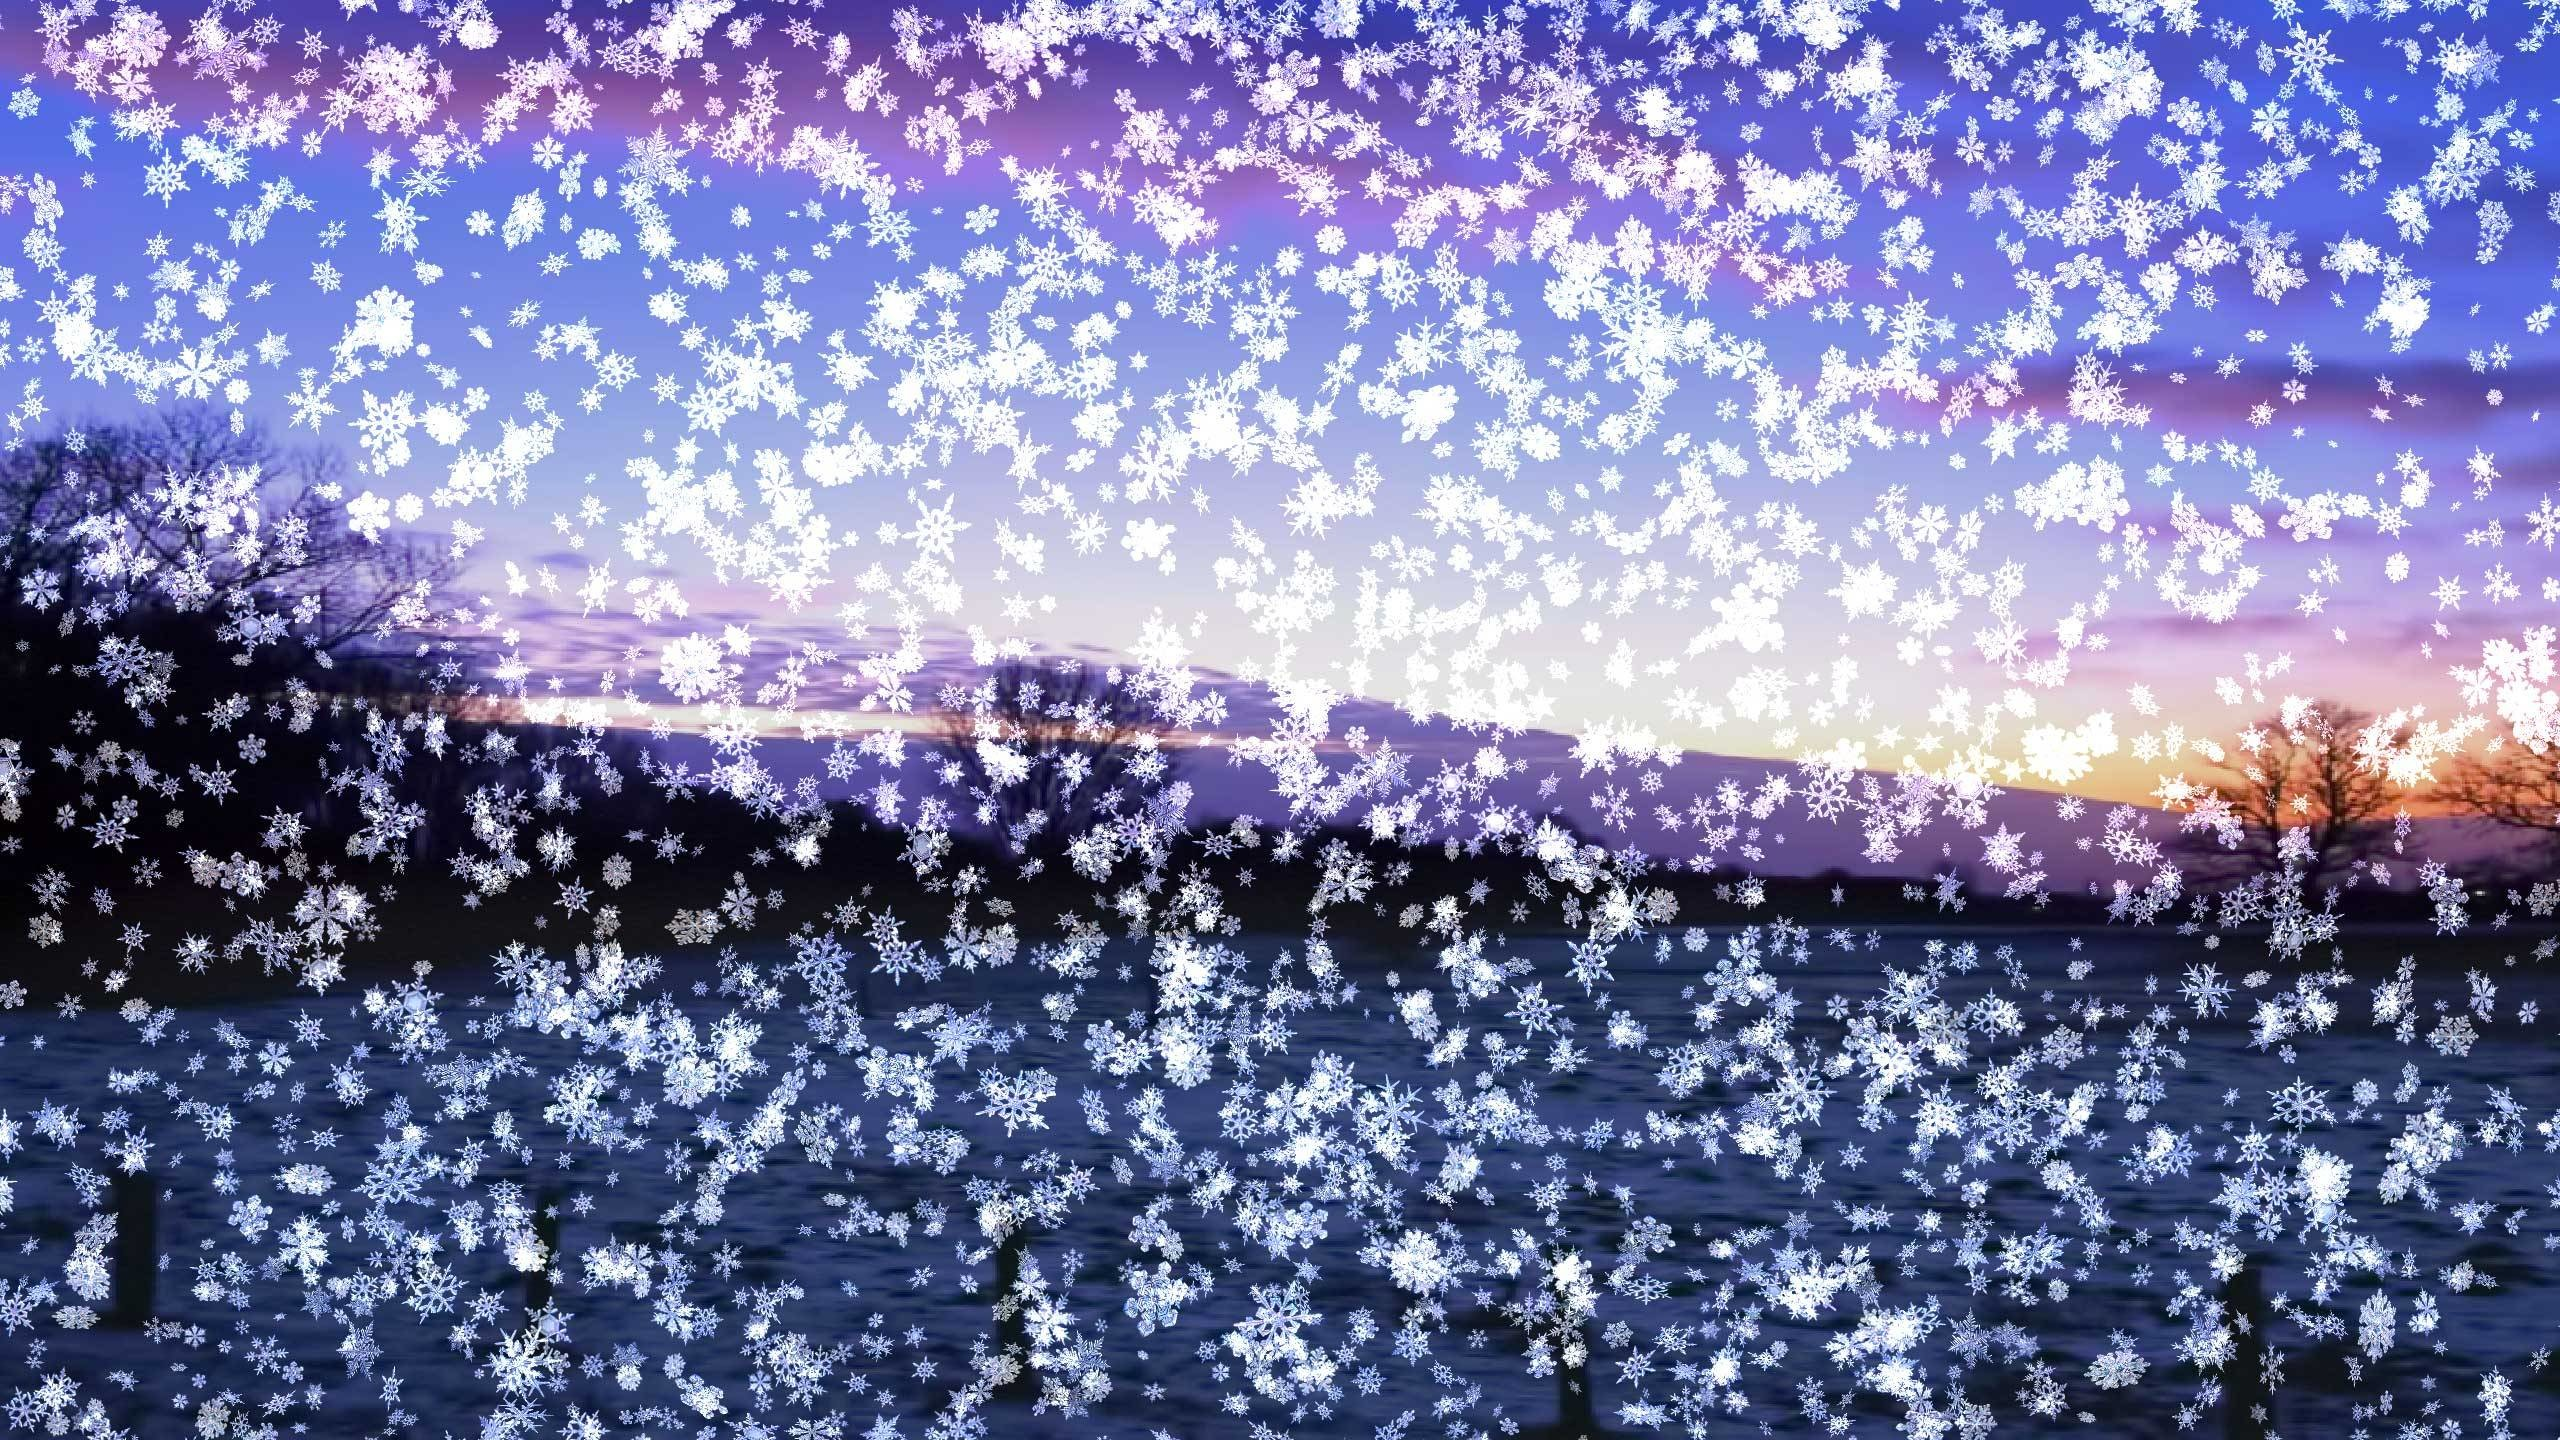 Live Wallpapers And Screensavers For Windows 10 8 7. Another Way To Make Snow  Falling